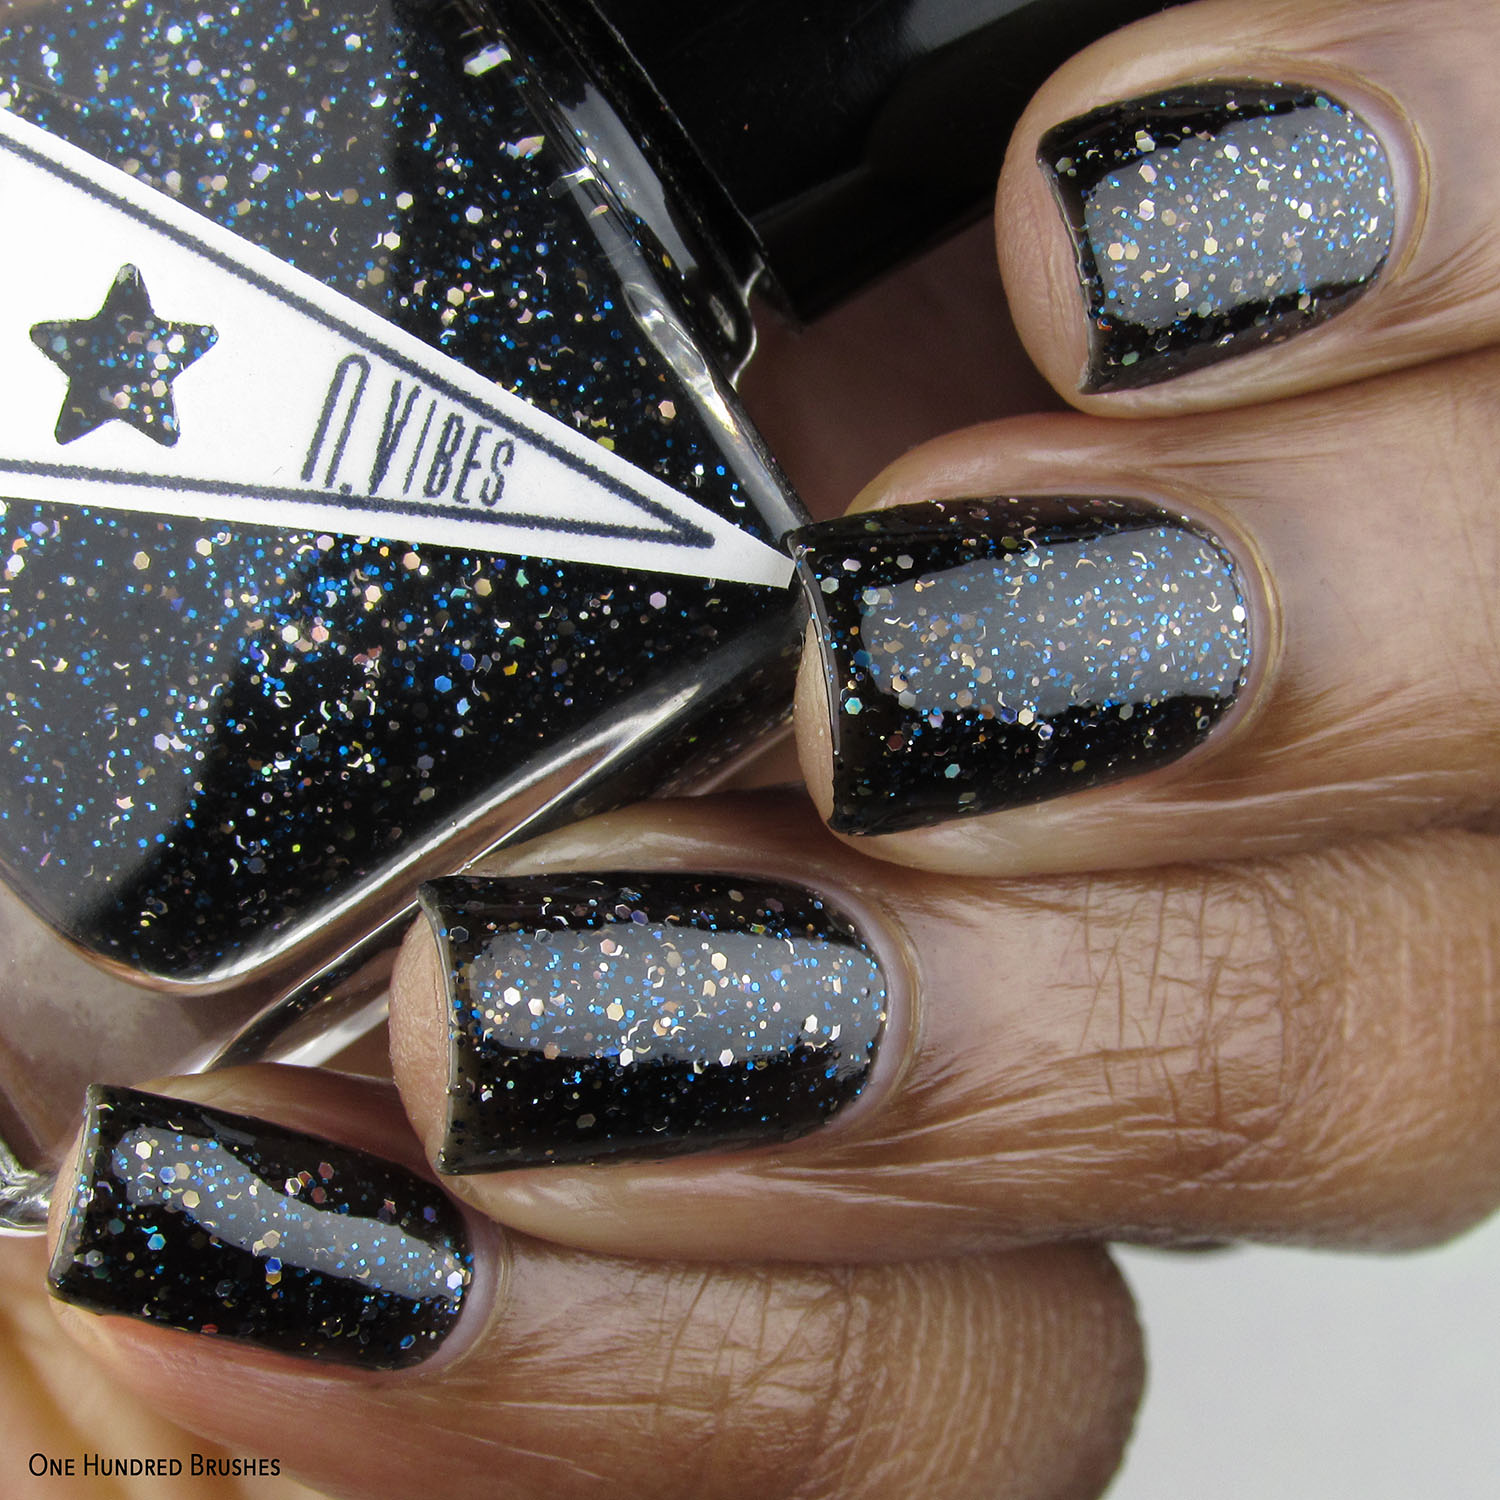 Constellations - Stargazer Collection - Pep Nail Vibes Feb 2020